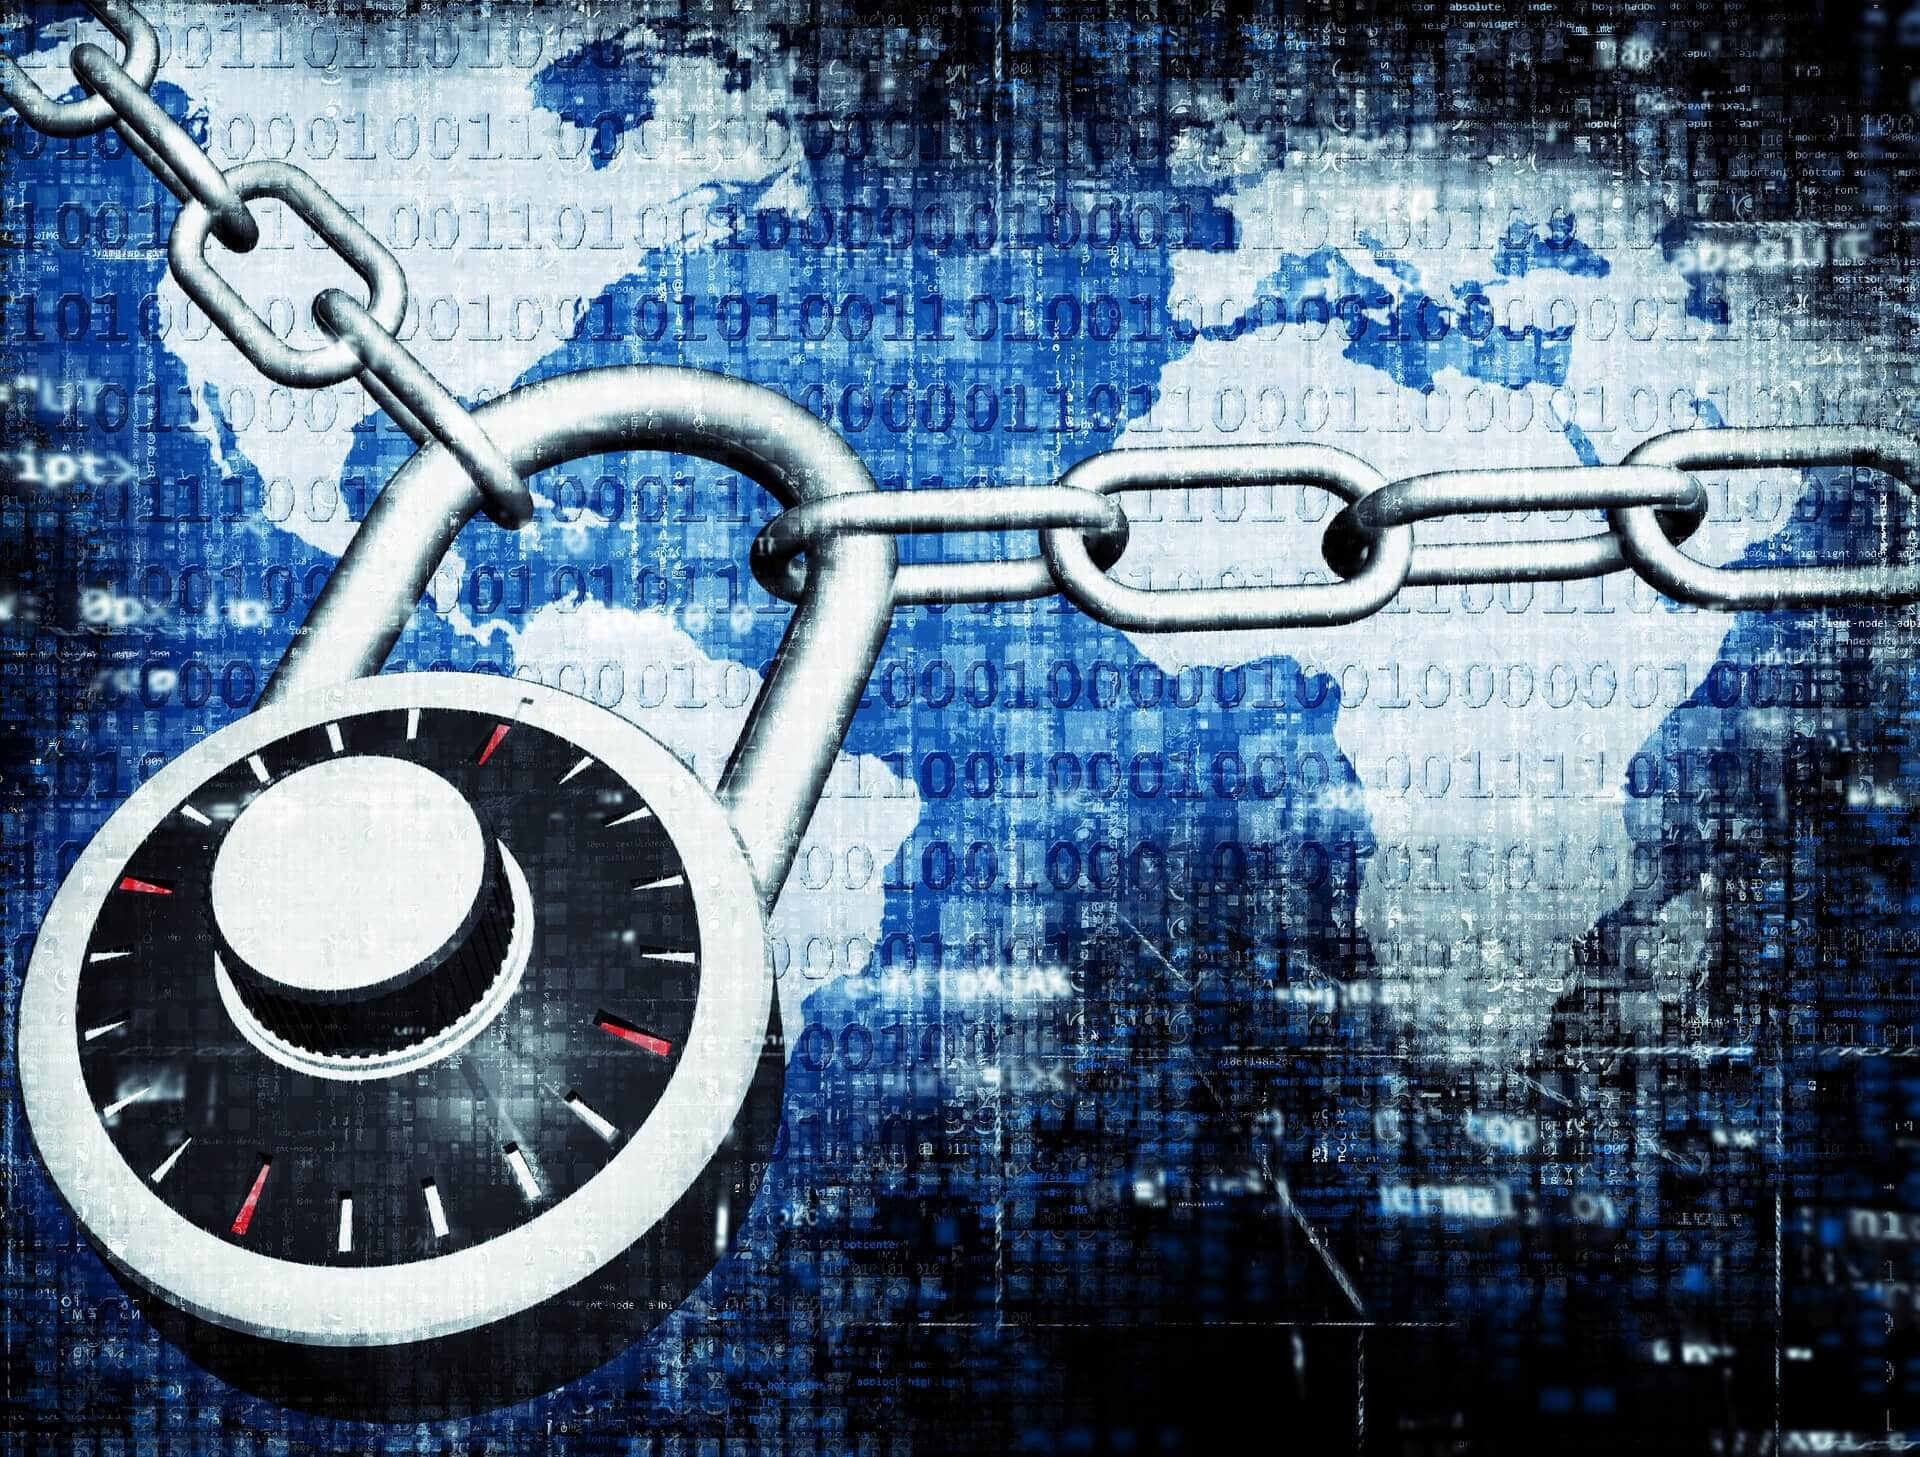 content/ru-ru/images/repository/isc/2020/how-to-protect-your-internet-privacy.jpg